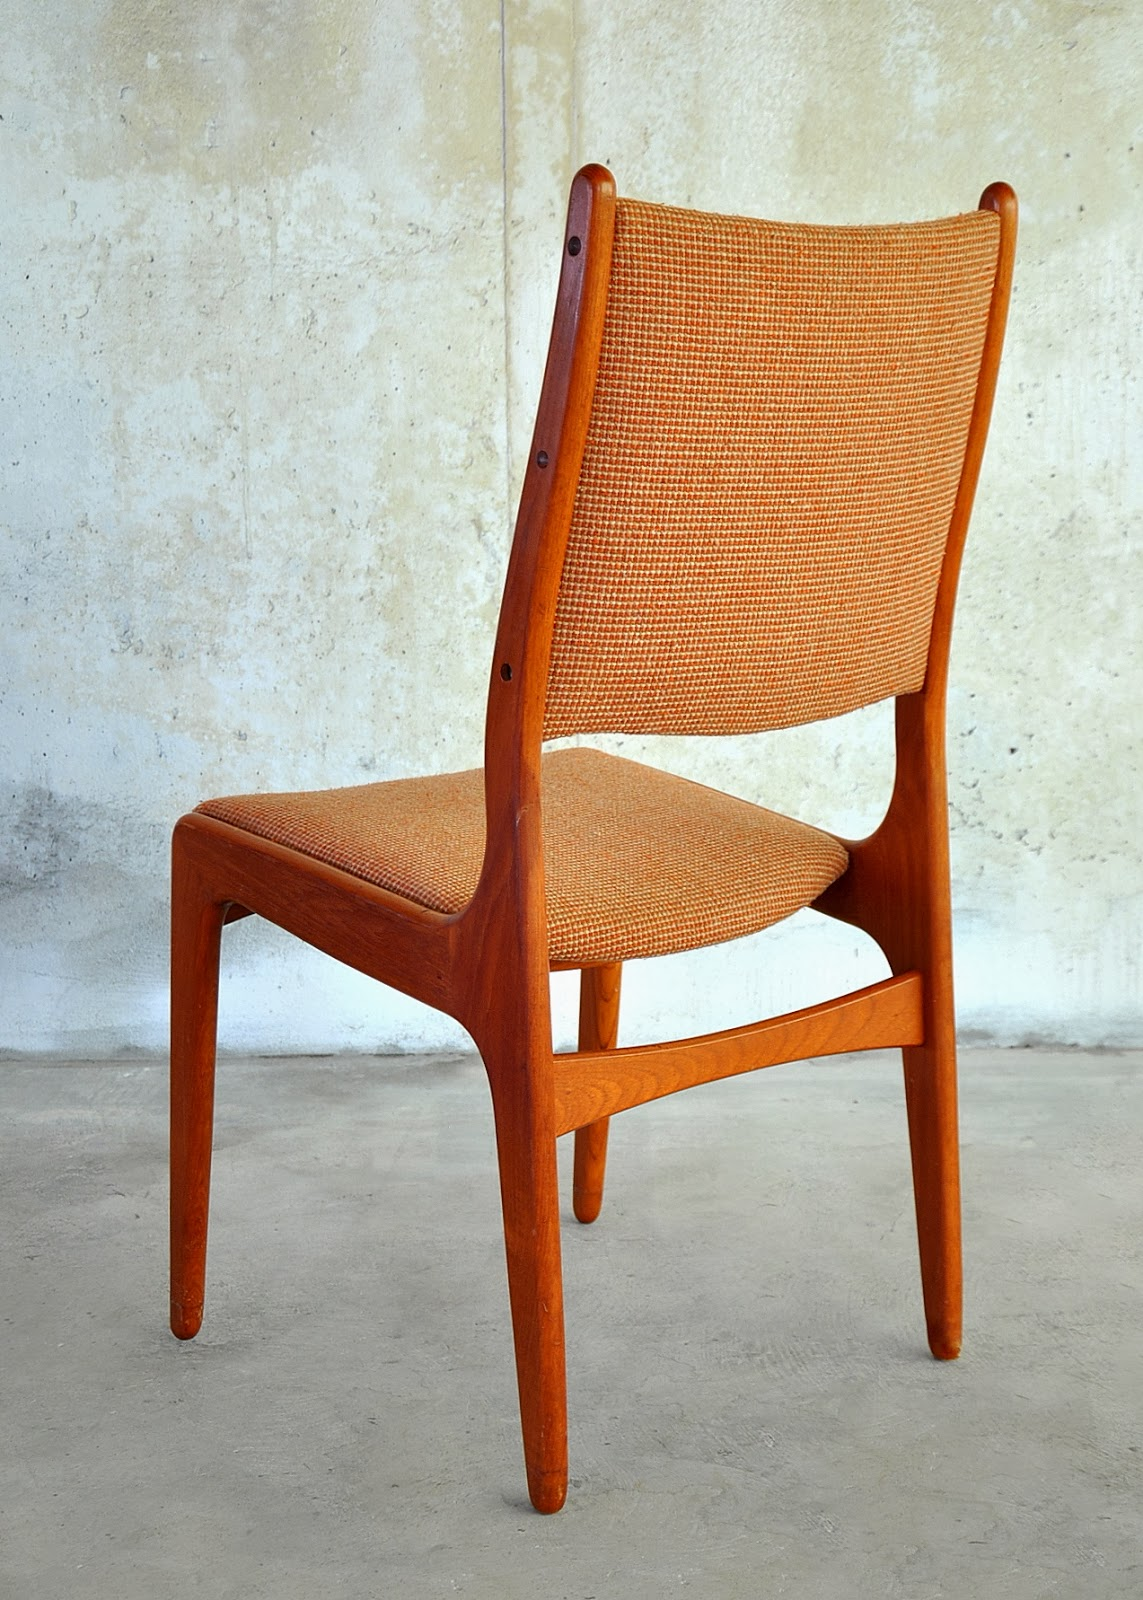 SELECT MODERN: Set of 6 Danish Modern Teak Dining Chairs